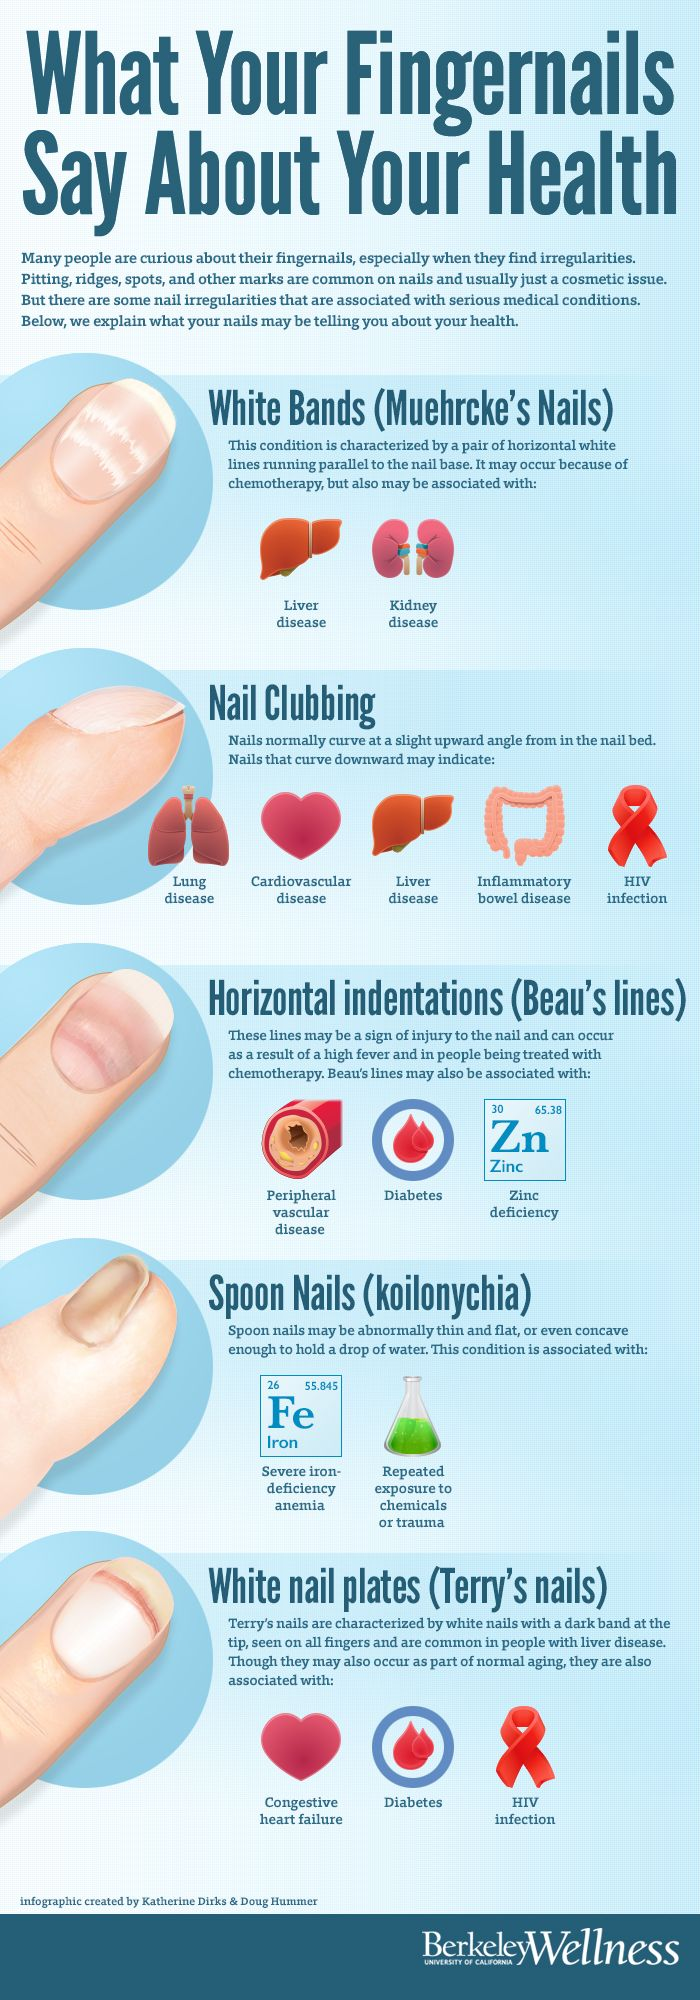 Most #fingernail irregularities are simply cosmetic, but there are some #nail irregularities that are associated with serious #medical conditions. Learn what your nails may be saying about your #heath: http://www.berkeleywellness.com/self-care/preventive-care/article/what-nails-say-about-your-health/?ap=2012 #fun #hearthealth #diabetes #HIV #AIDS